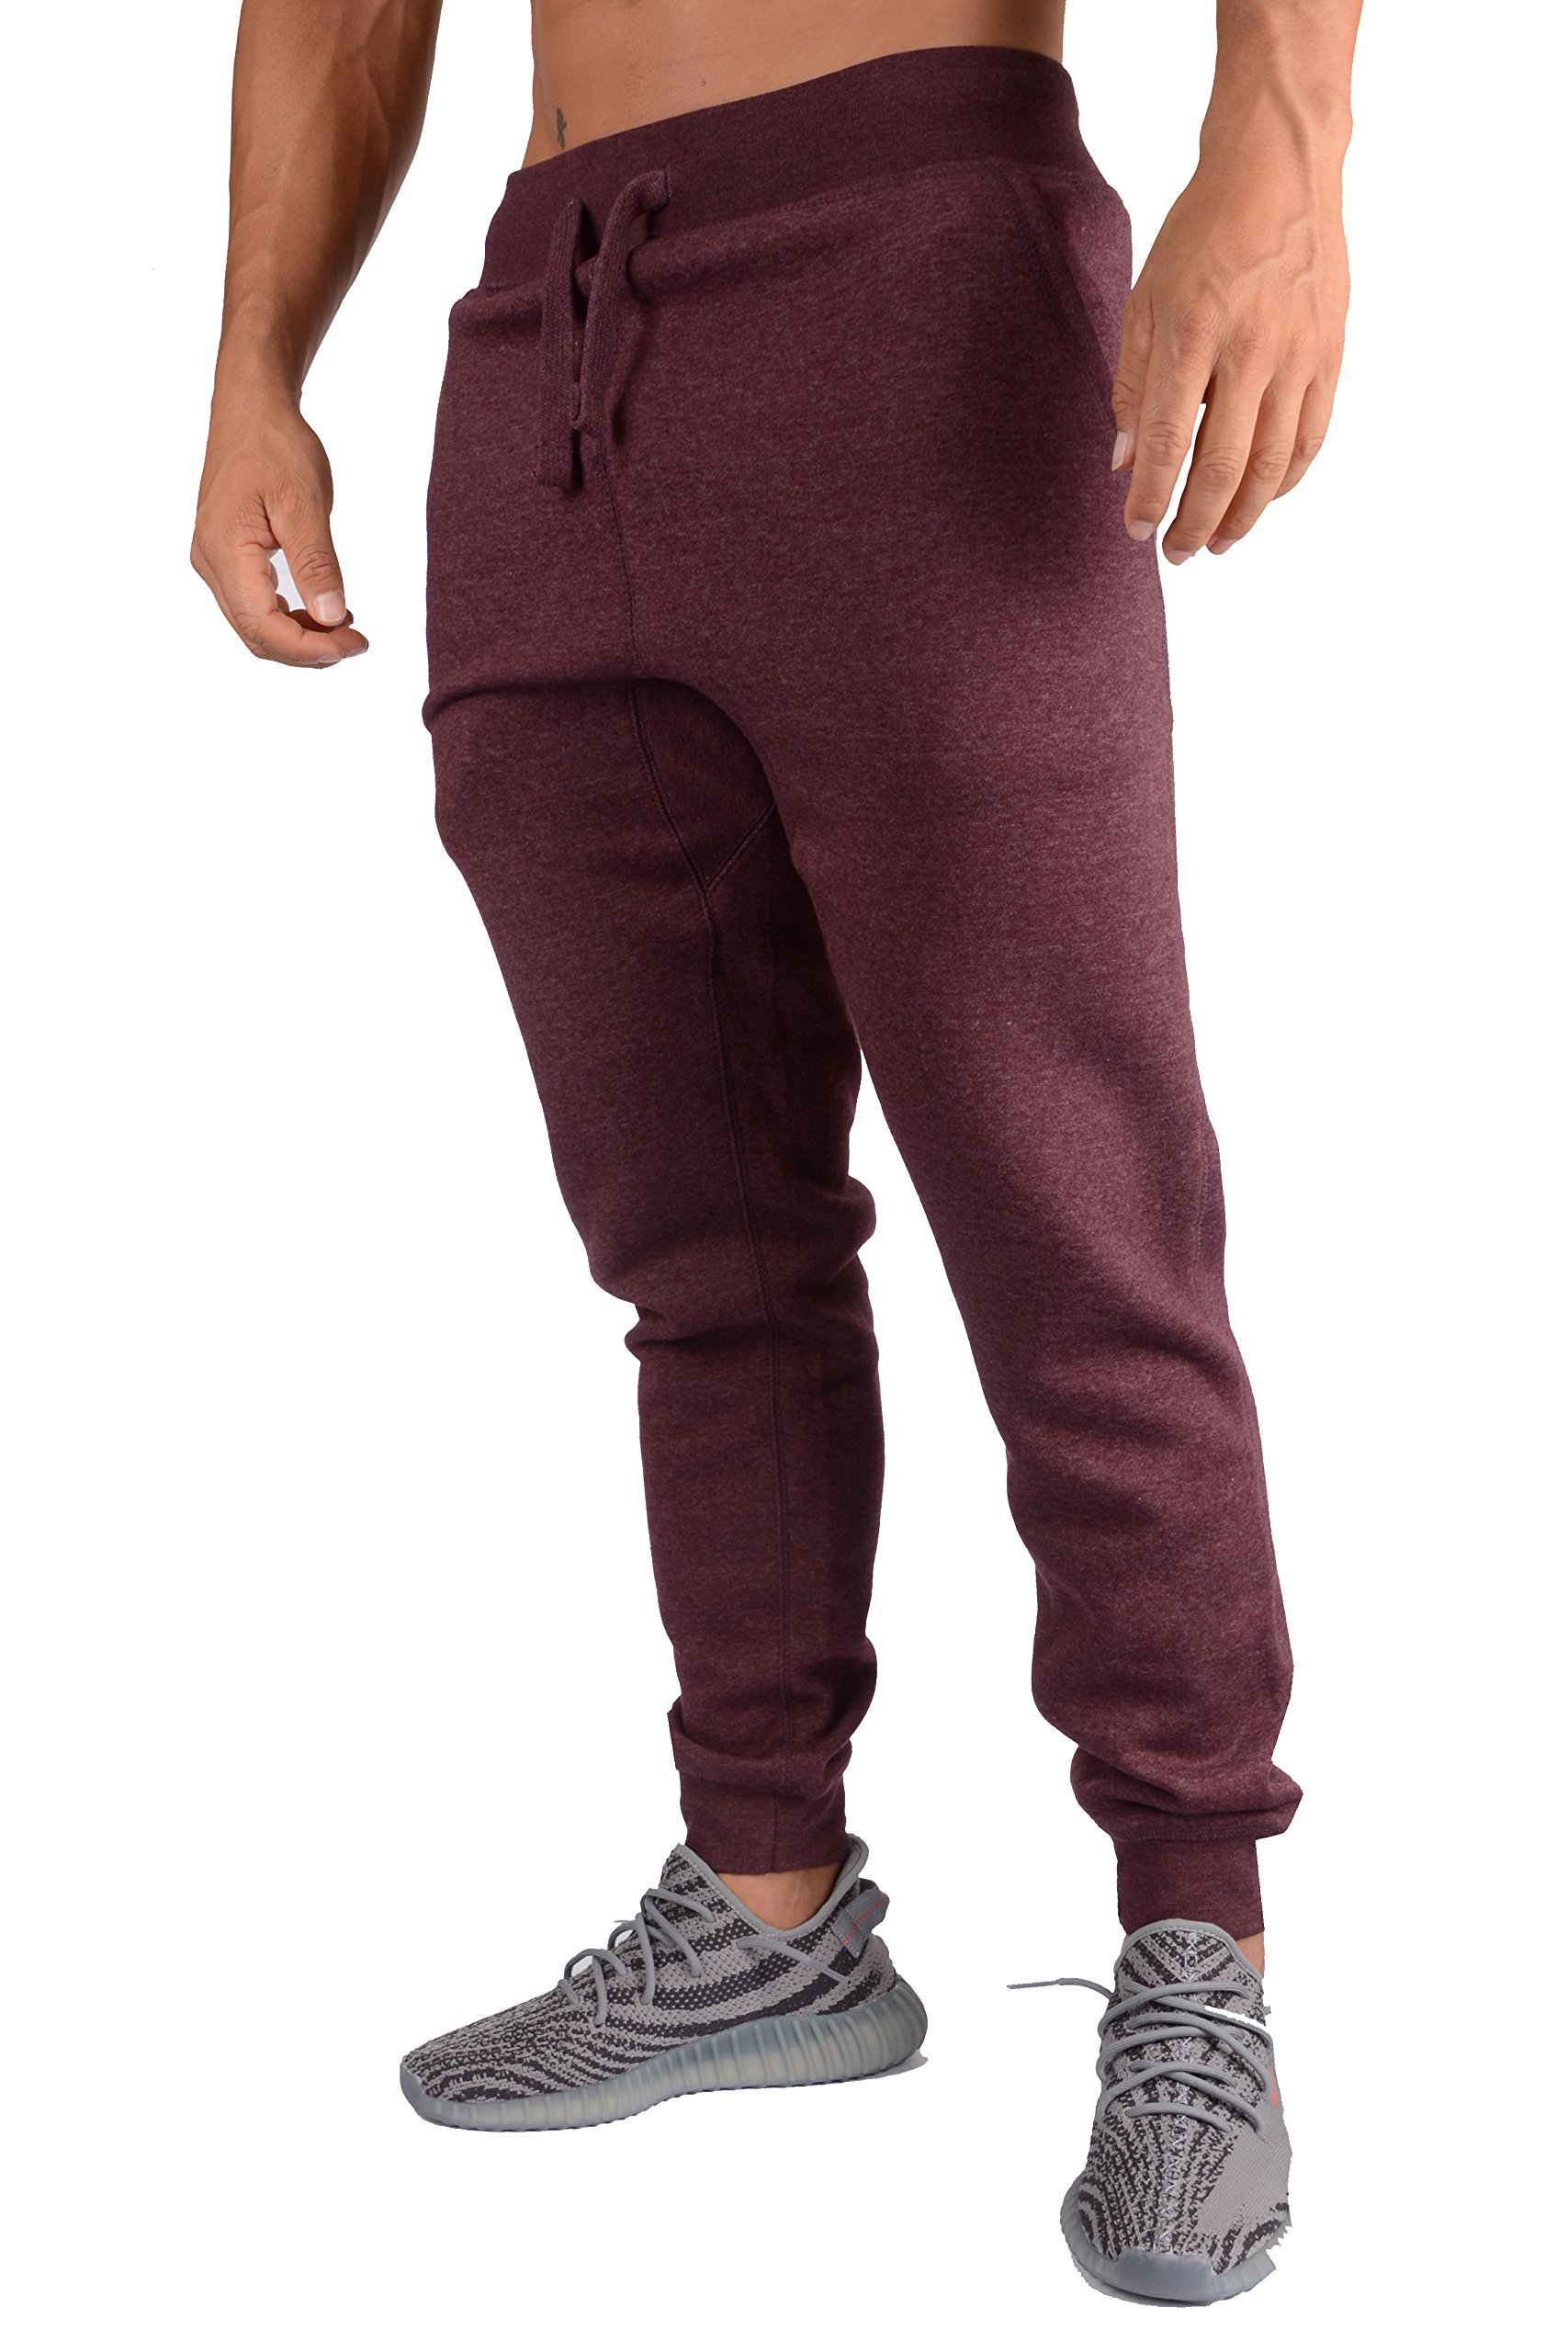 YoungLA Mens Slim Fit Joggers Fitness Activewear Sports Fleece Sweatpants for Gym Training Burgundy Heather Small